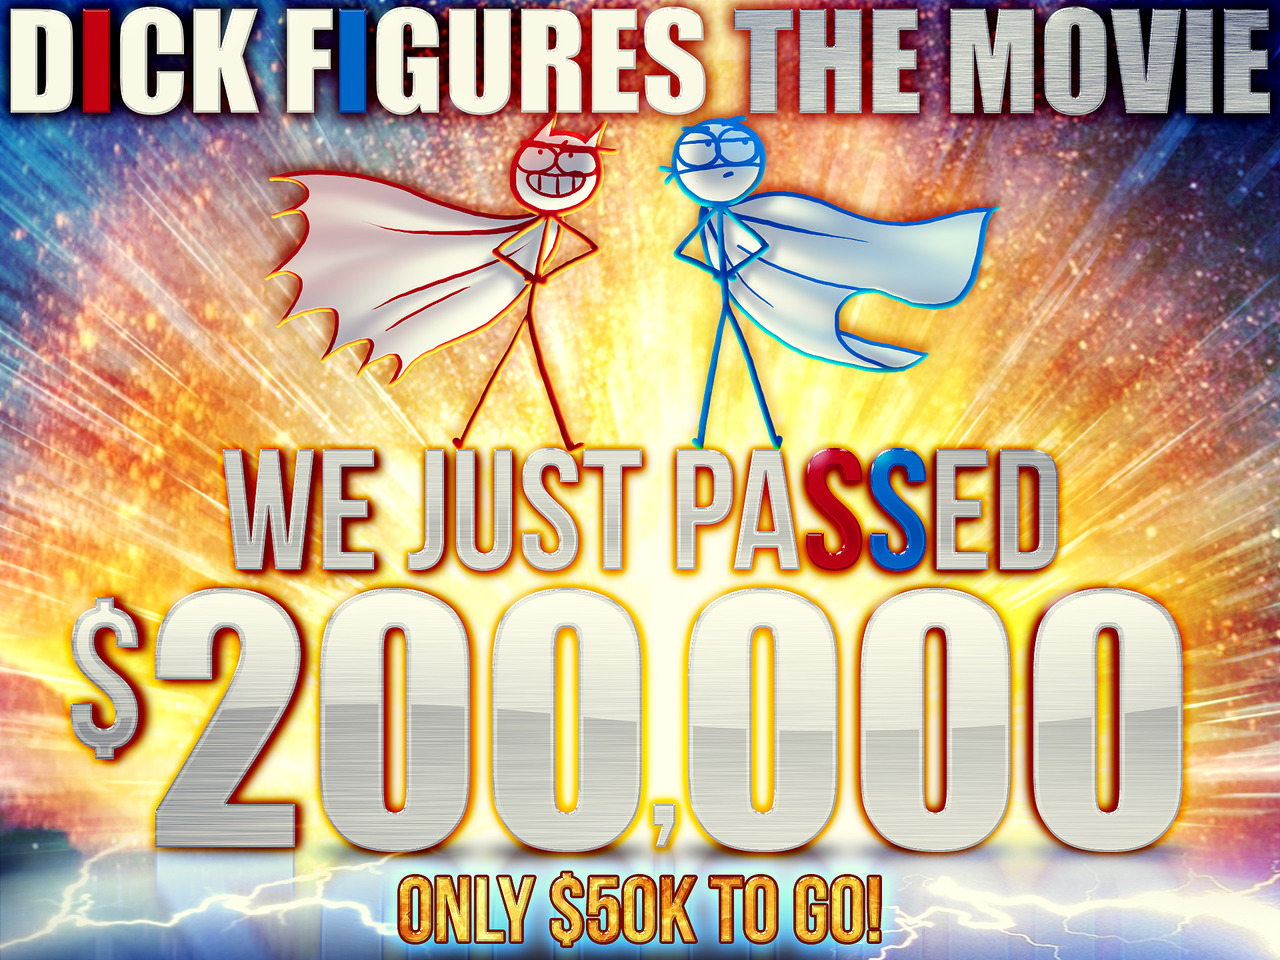 edskudder:  $200,000!!! Thanks to everyone for your support!!!!!!! This is an awesome milestone to cross! Even though we still have $50,000 left to raise, we're in great shape to make our goal at this rate. PLEASE CONTINUE TO DONATE, SHARE IT AROUND AND SUPPORTING THE PROJECT!!! Together we can do this YEEEAAAHHHH!! http://www.kickstarter.com/projects/dickfigures/dick-figures-the-movie Here's a little wallpaper as a token of our visual gratitude. Feel free to save it and spread it around to celebrate!